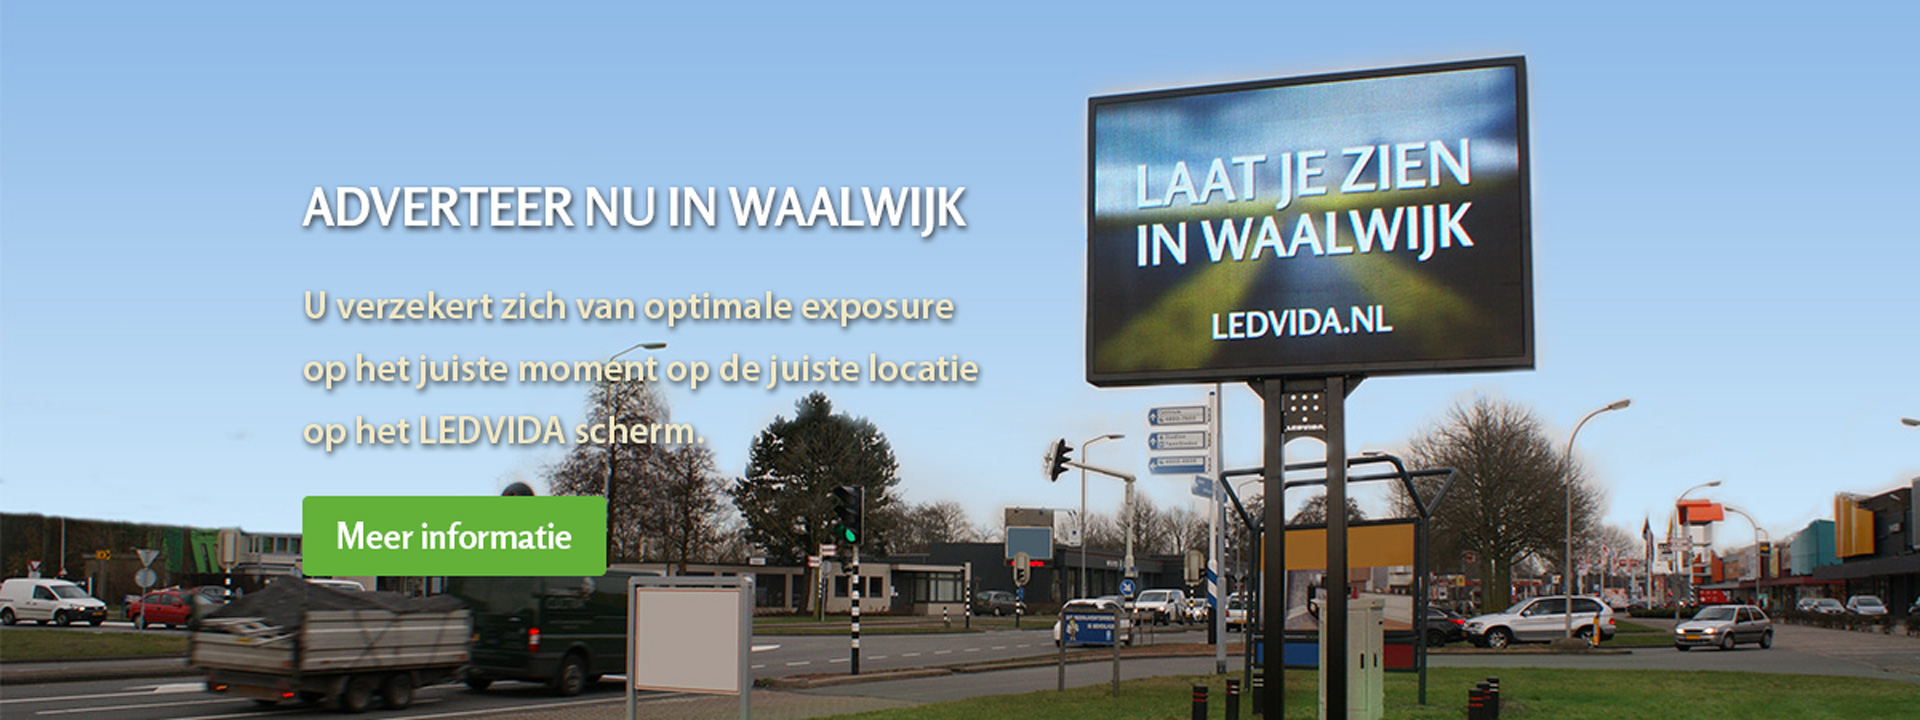 adverteer-in-waalwijk.jpg